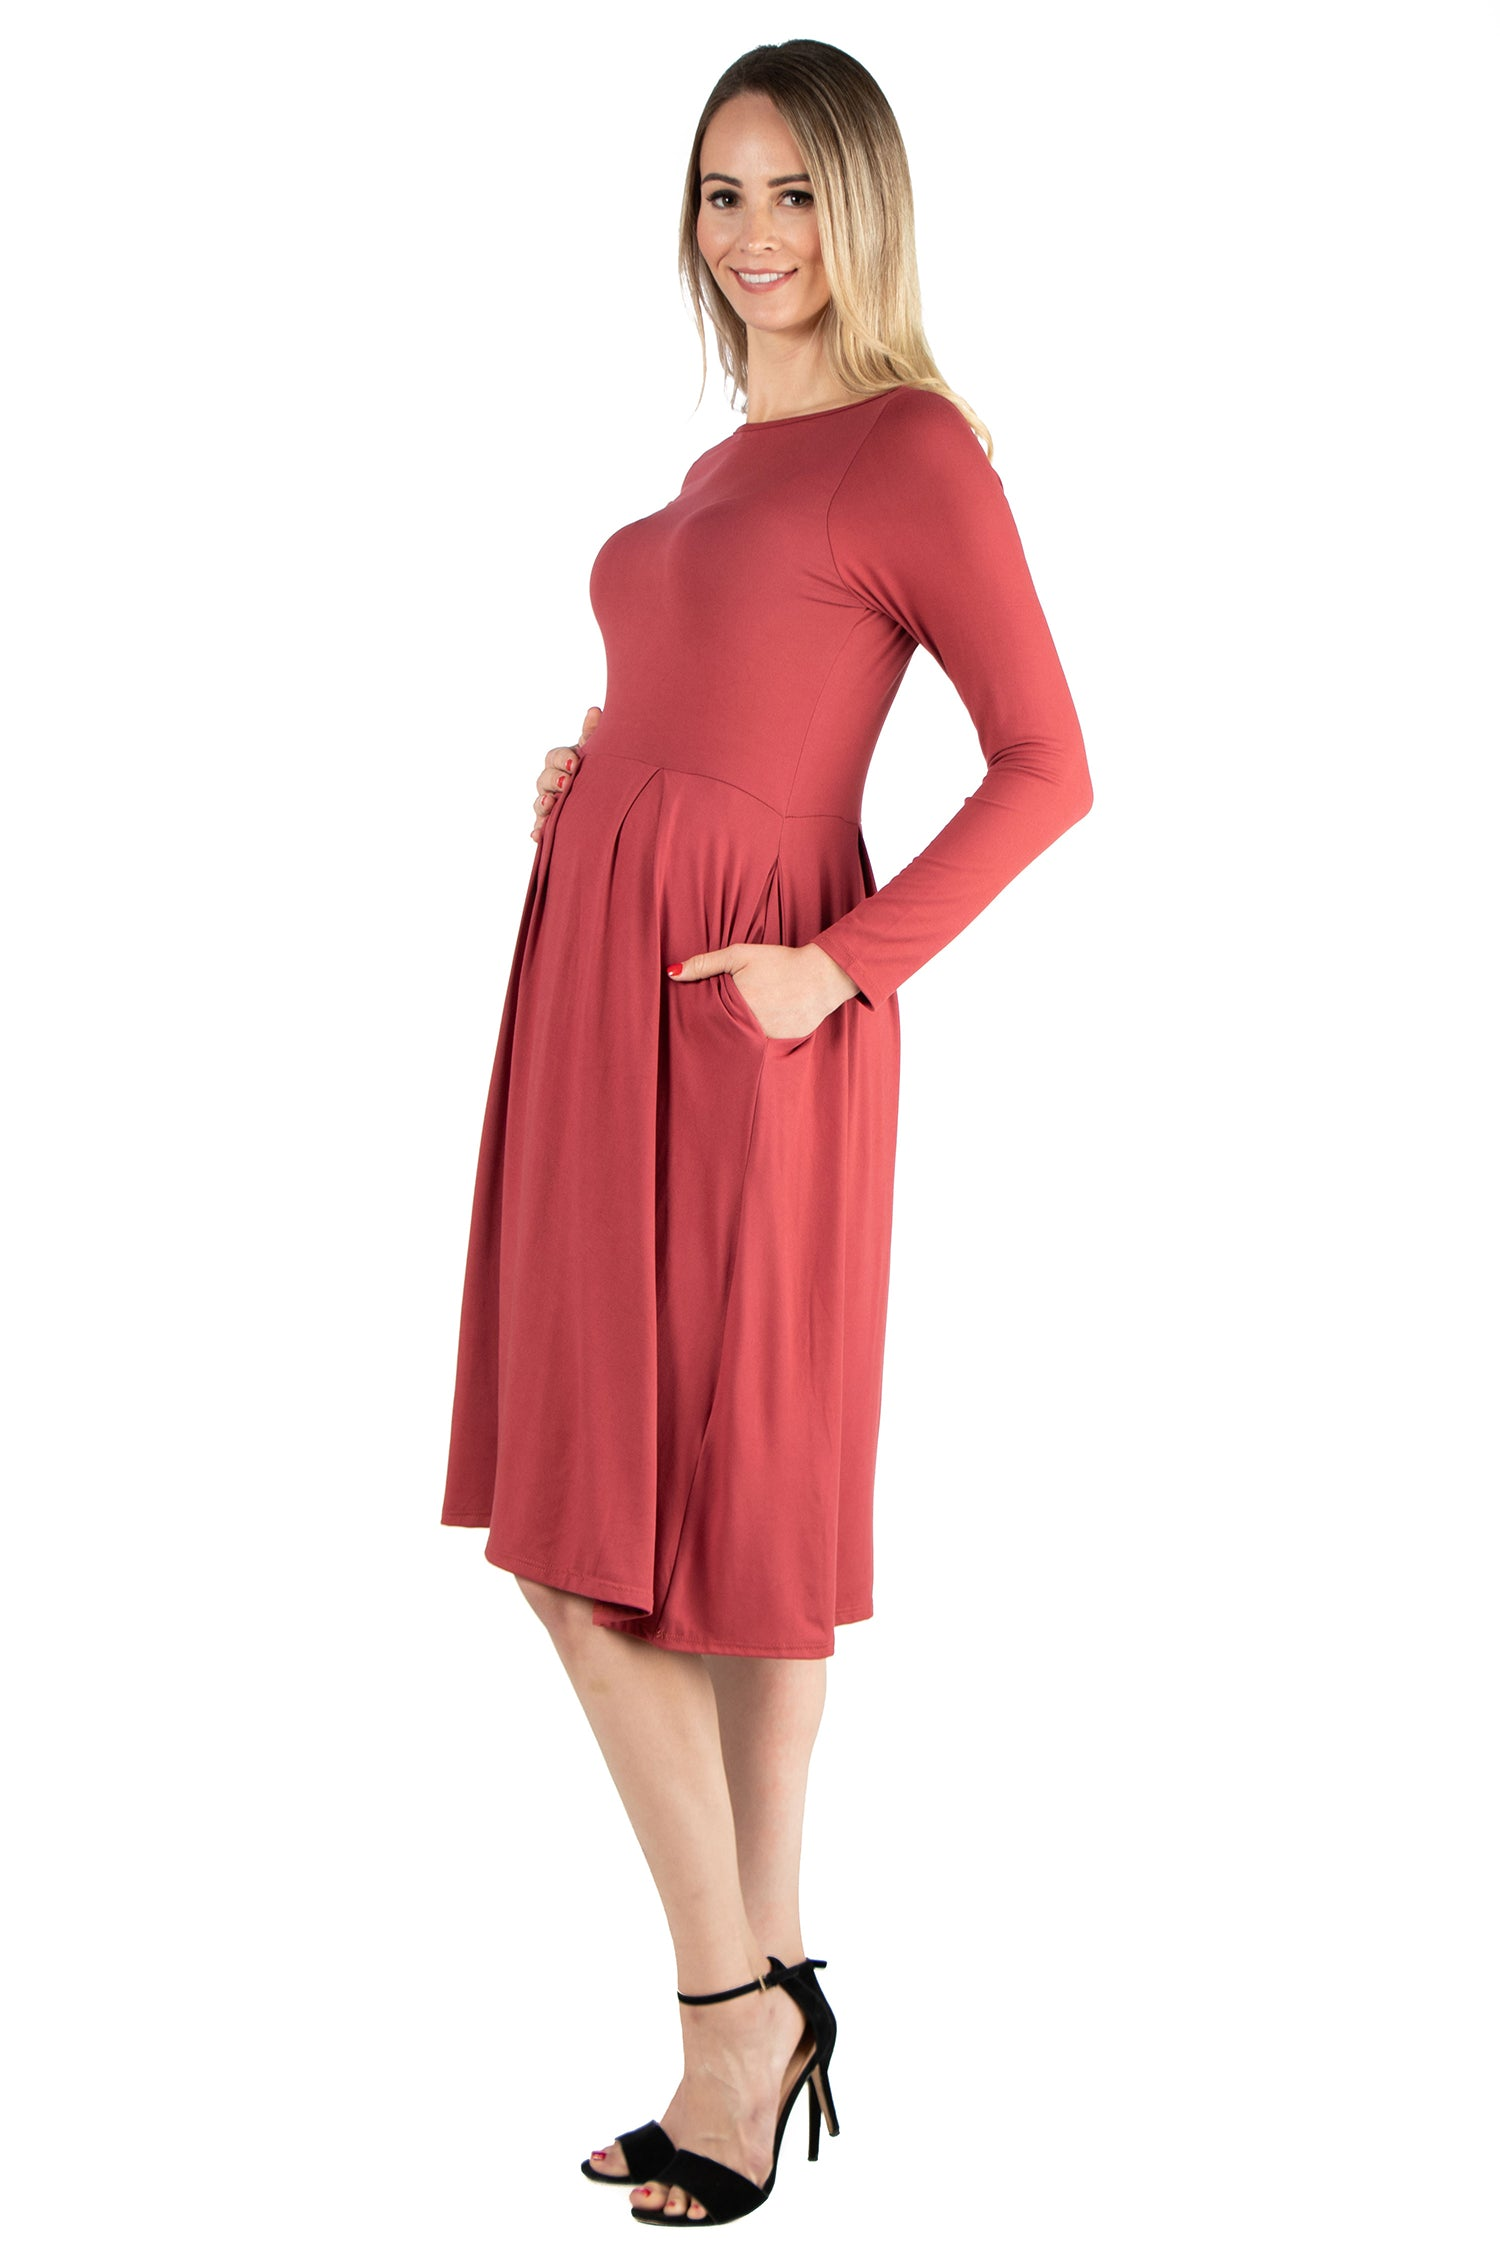 accf4dd6287 24seven Comfort Apparel Long Sleeve Fit and Flare Maternity Midi Dress- Dresses-24/